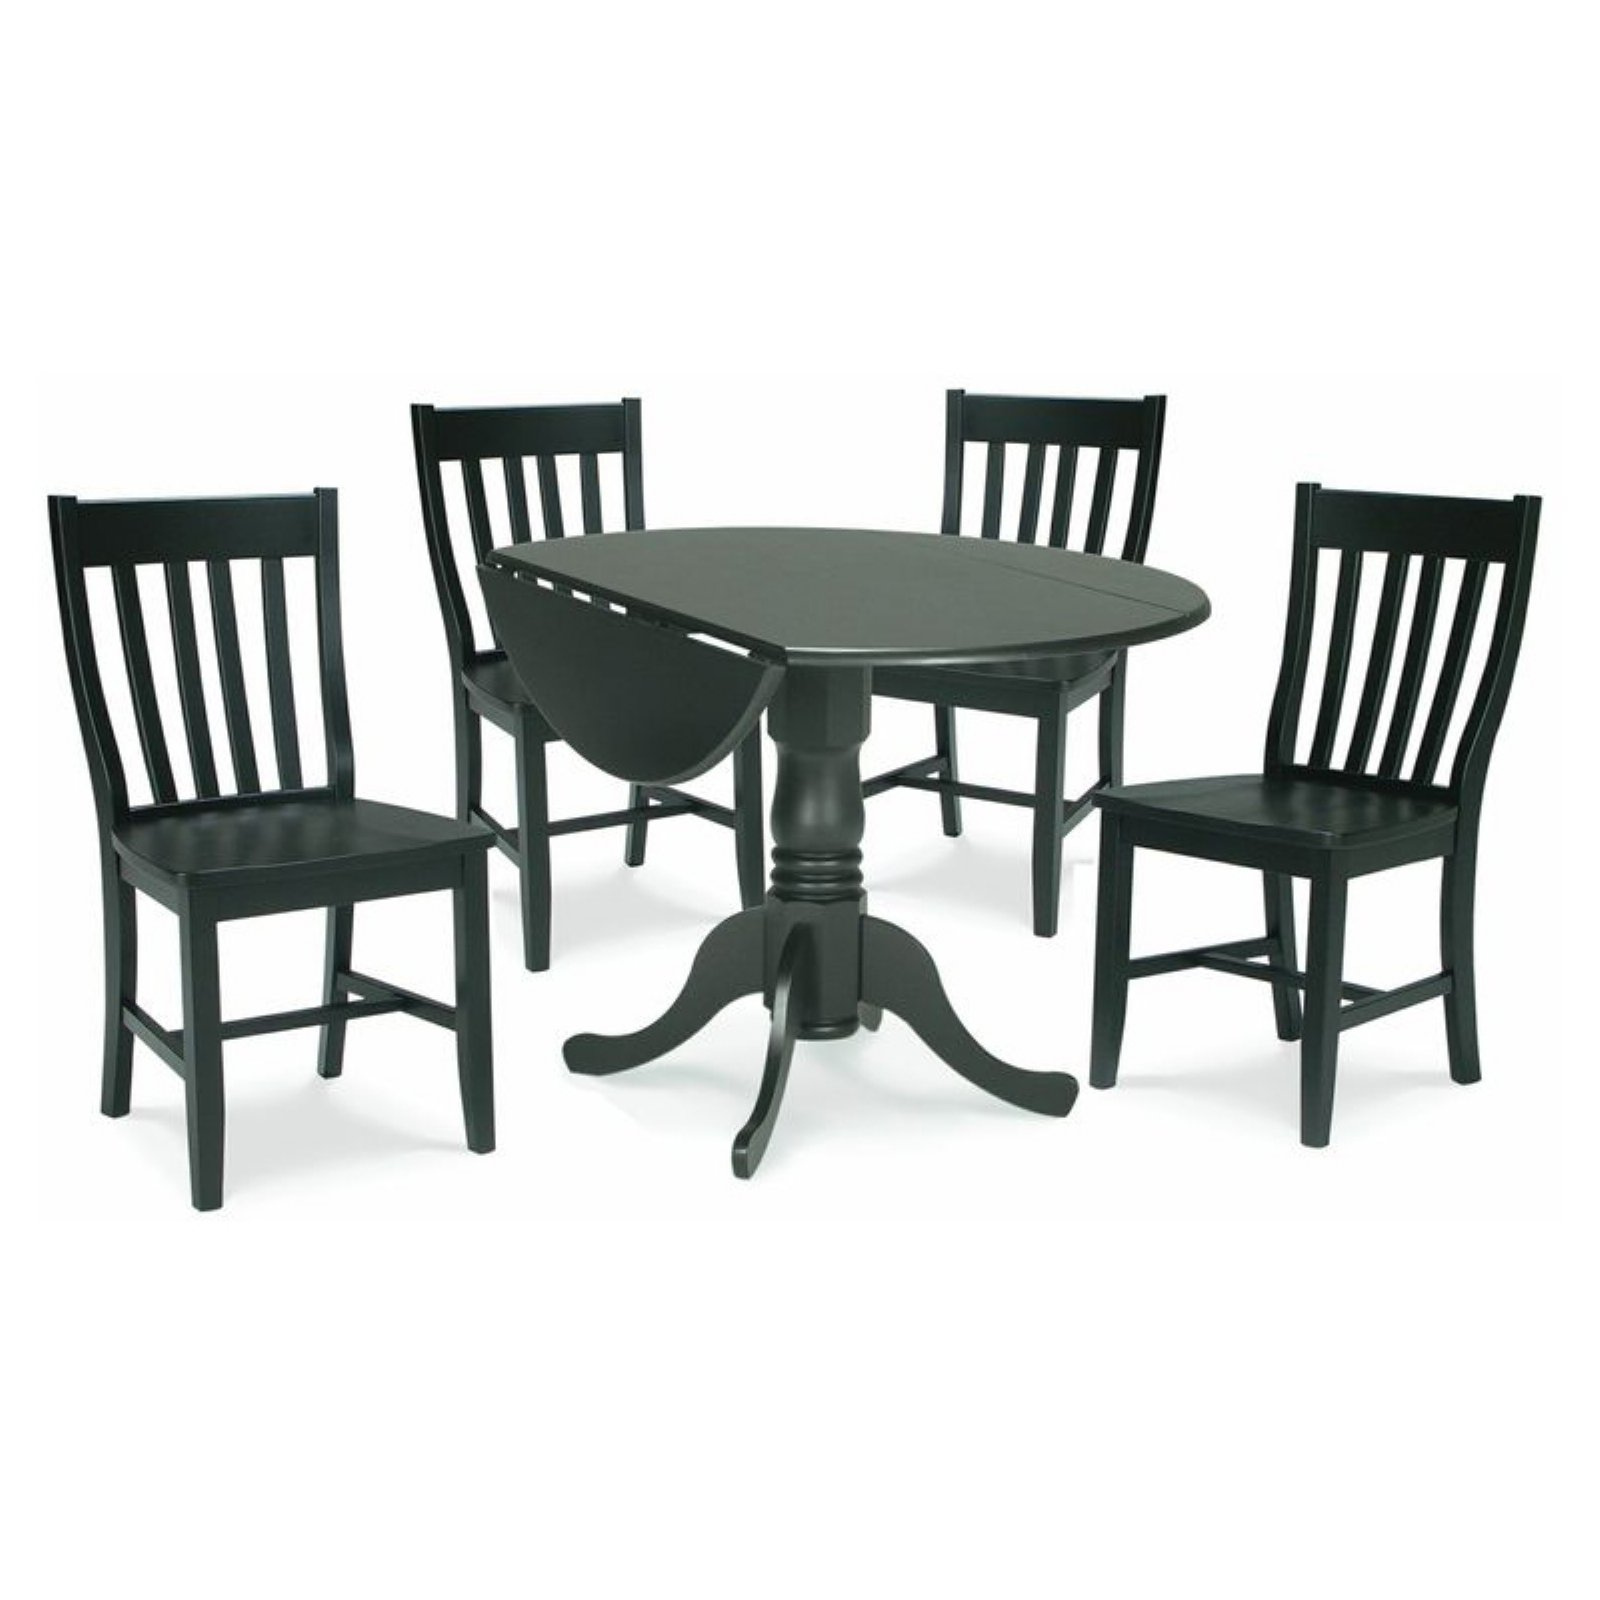 "42"" Dual Drop Leaf Table with 4 Schoolhouse Chairs"